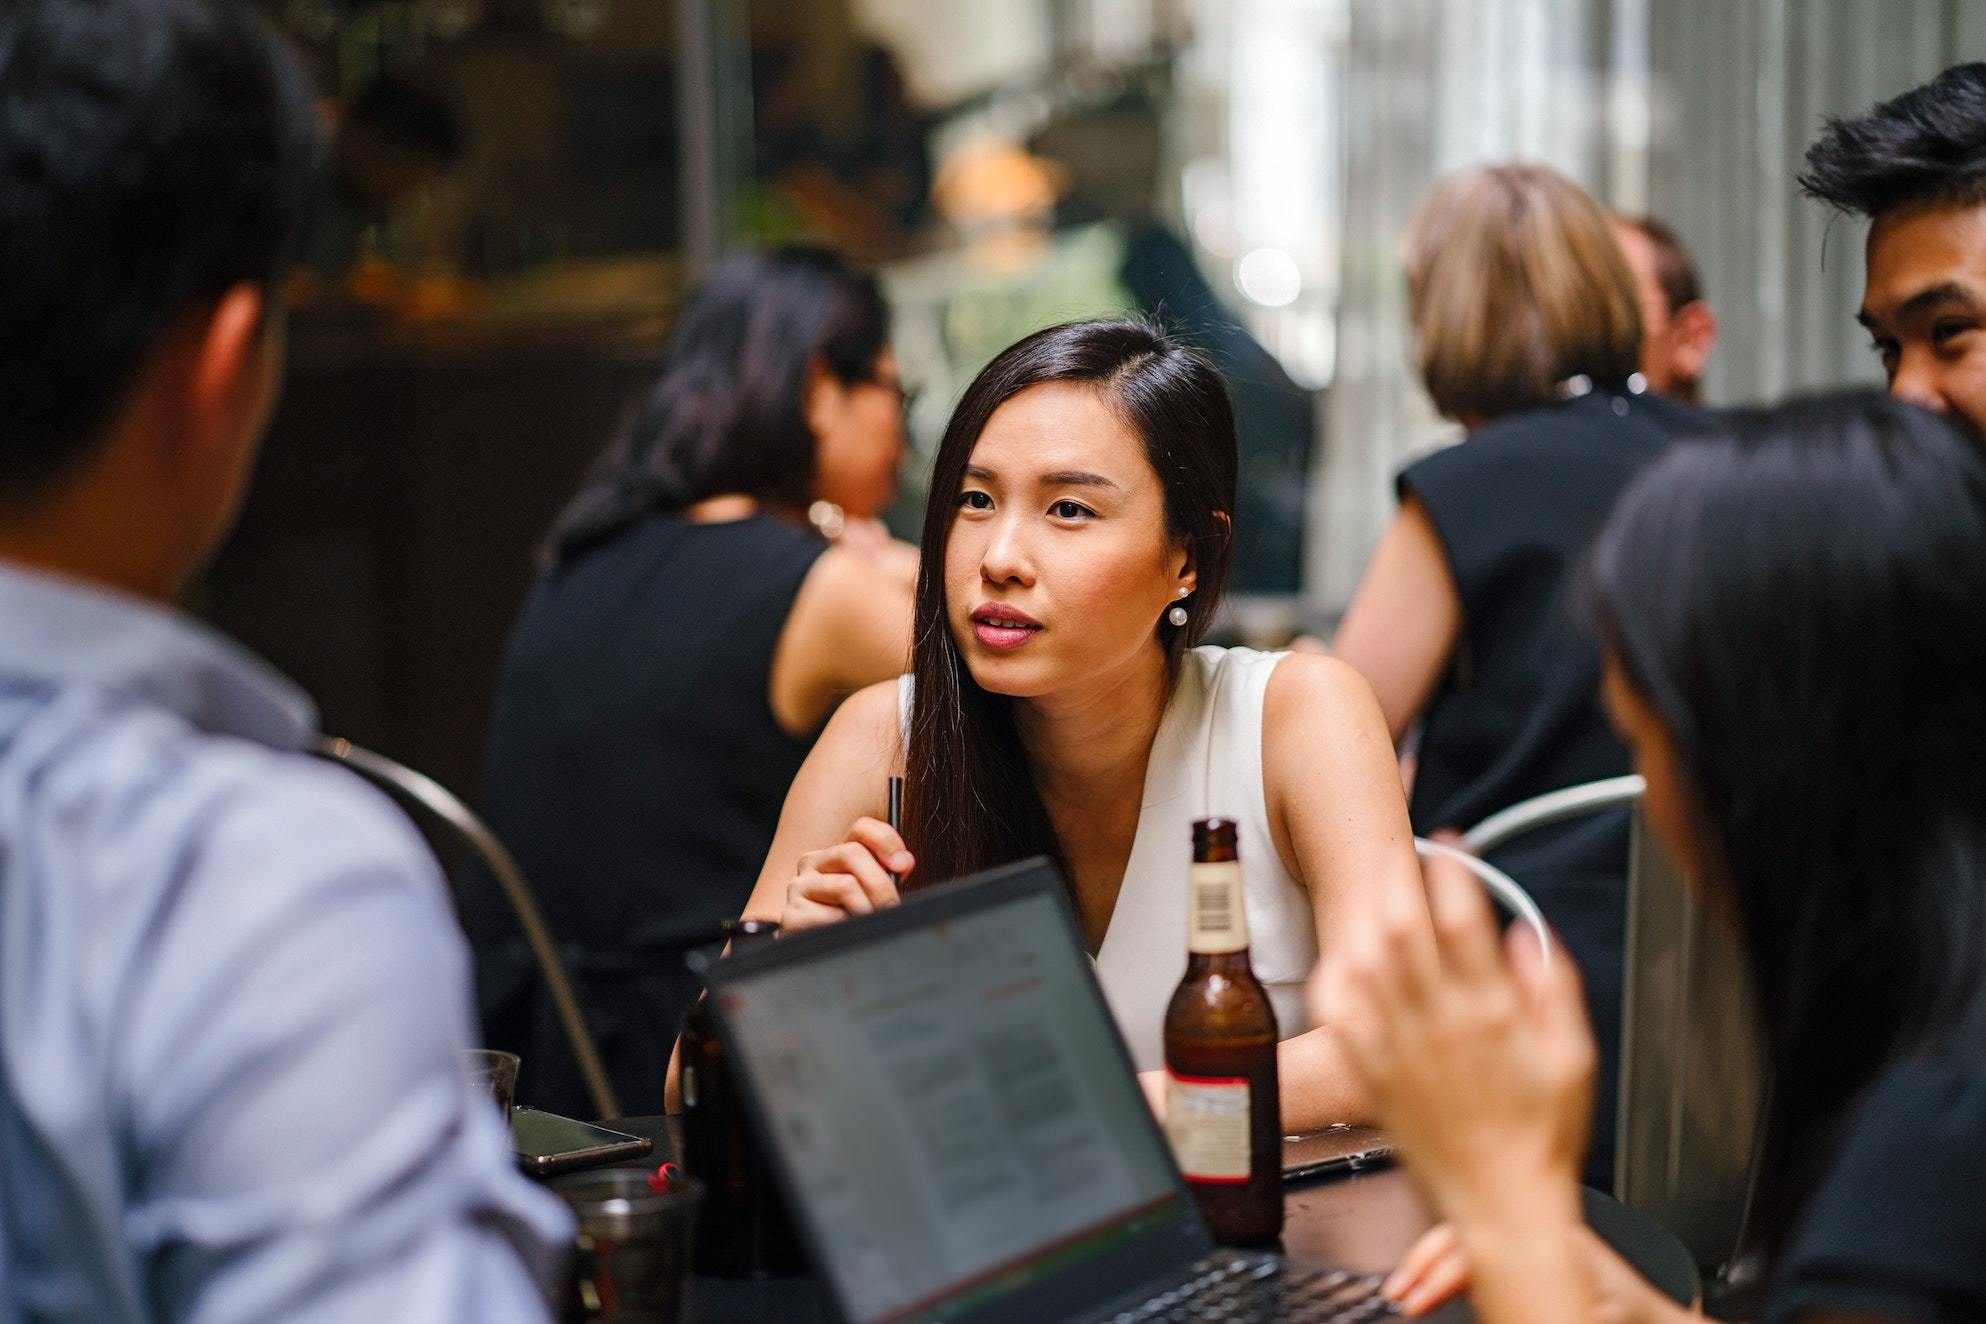 Group of colleagues at a bar with a laptop